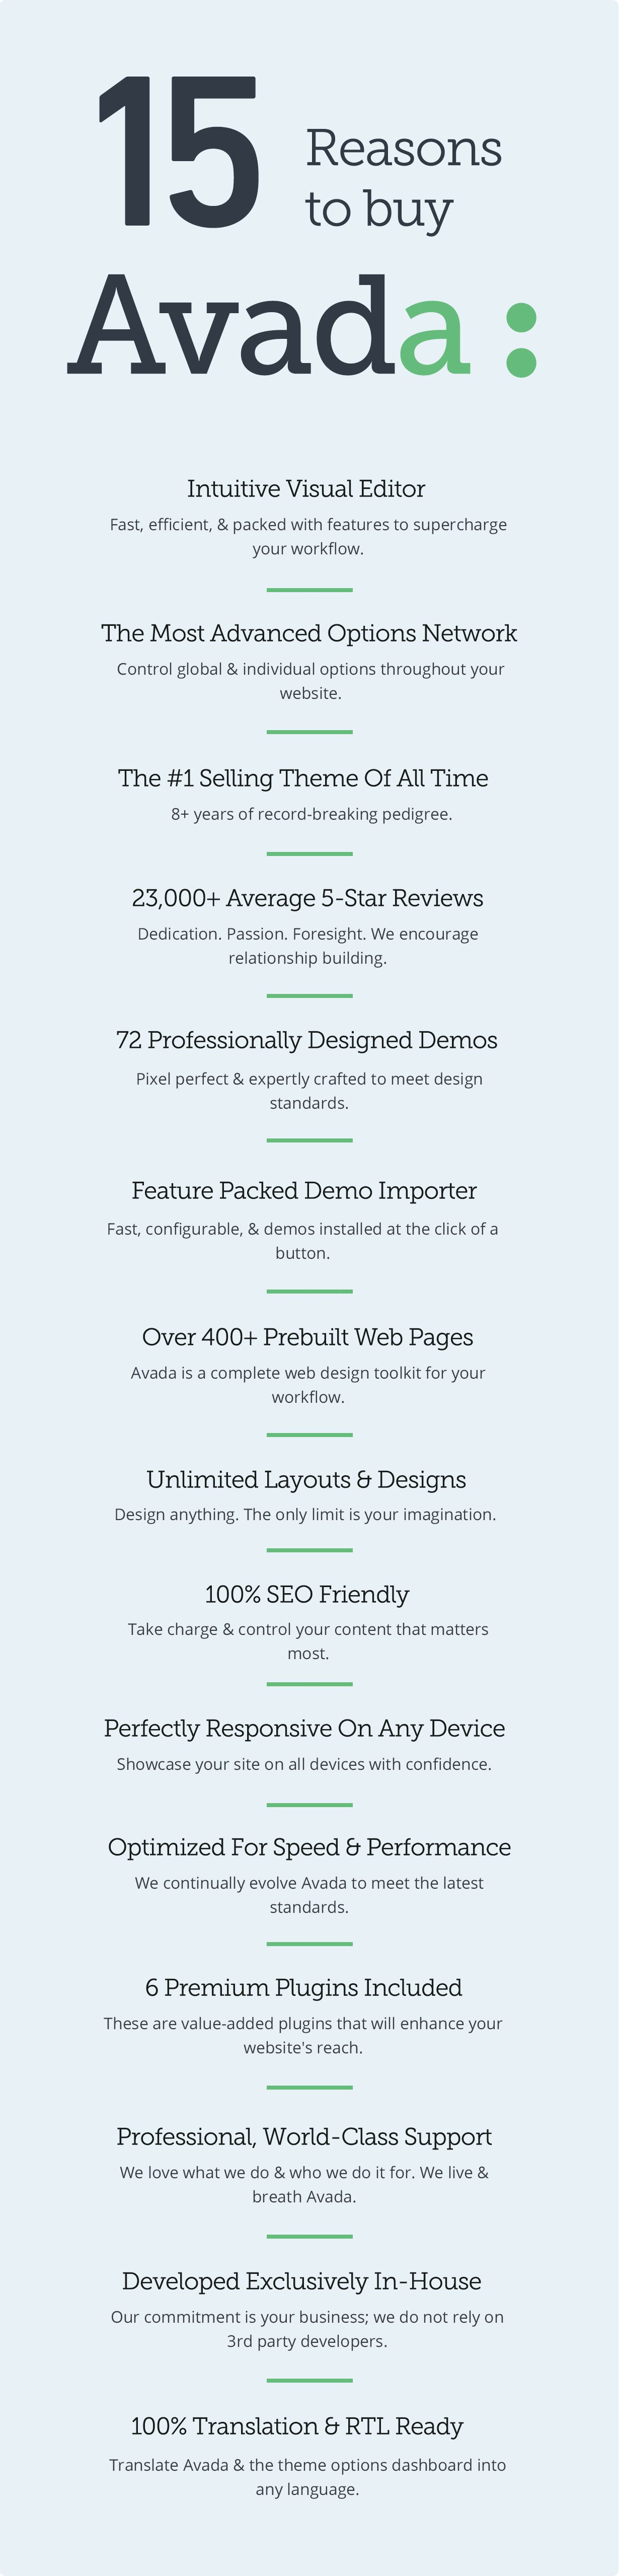 Avada | Website Builder For WordPress & WooCommerce - 27